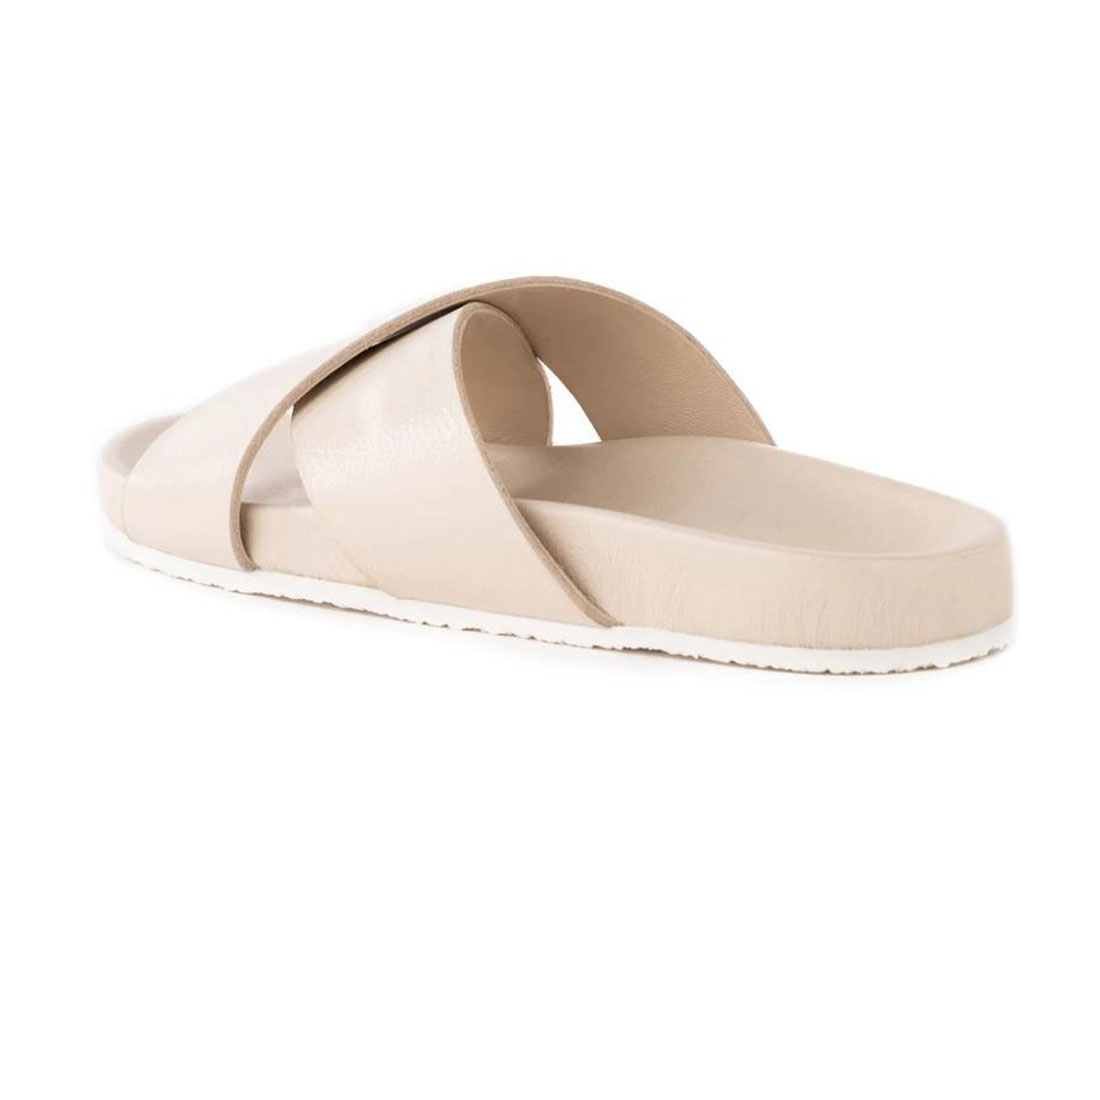 seychelles lighthearted slide in off white leather 84447